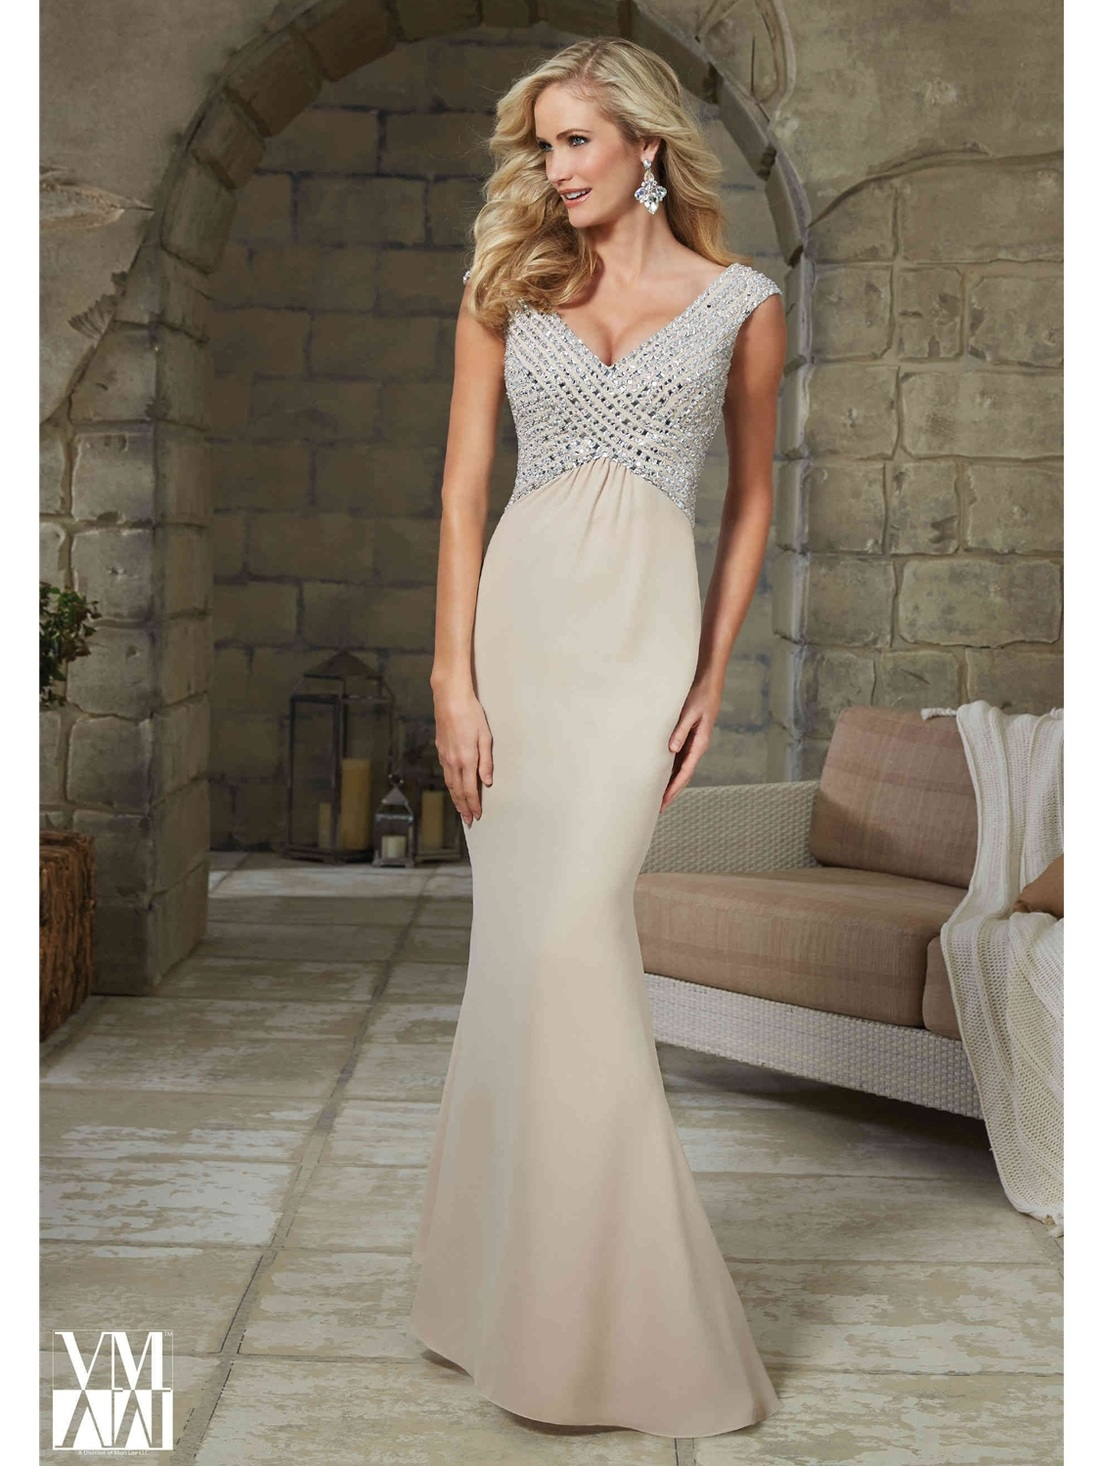 Budget Mermaid Wedding Dress - SaveOnTheDate